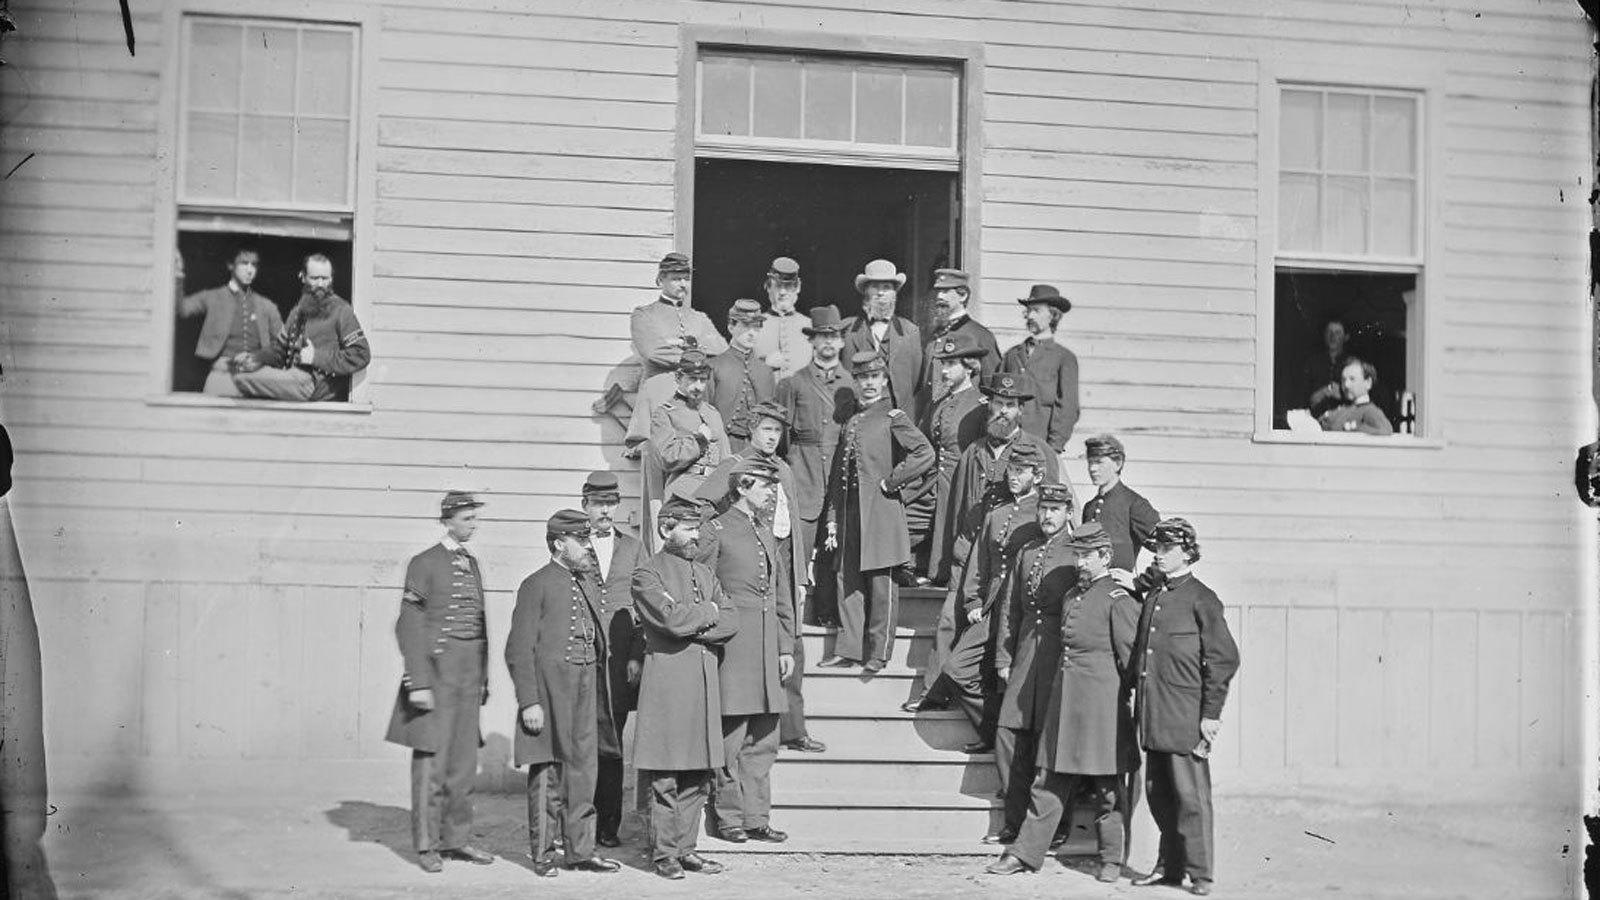 Civil War surgeons and stewards at Washington's Harewood hospital, circa 1860-65. (U.S. War Department)